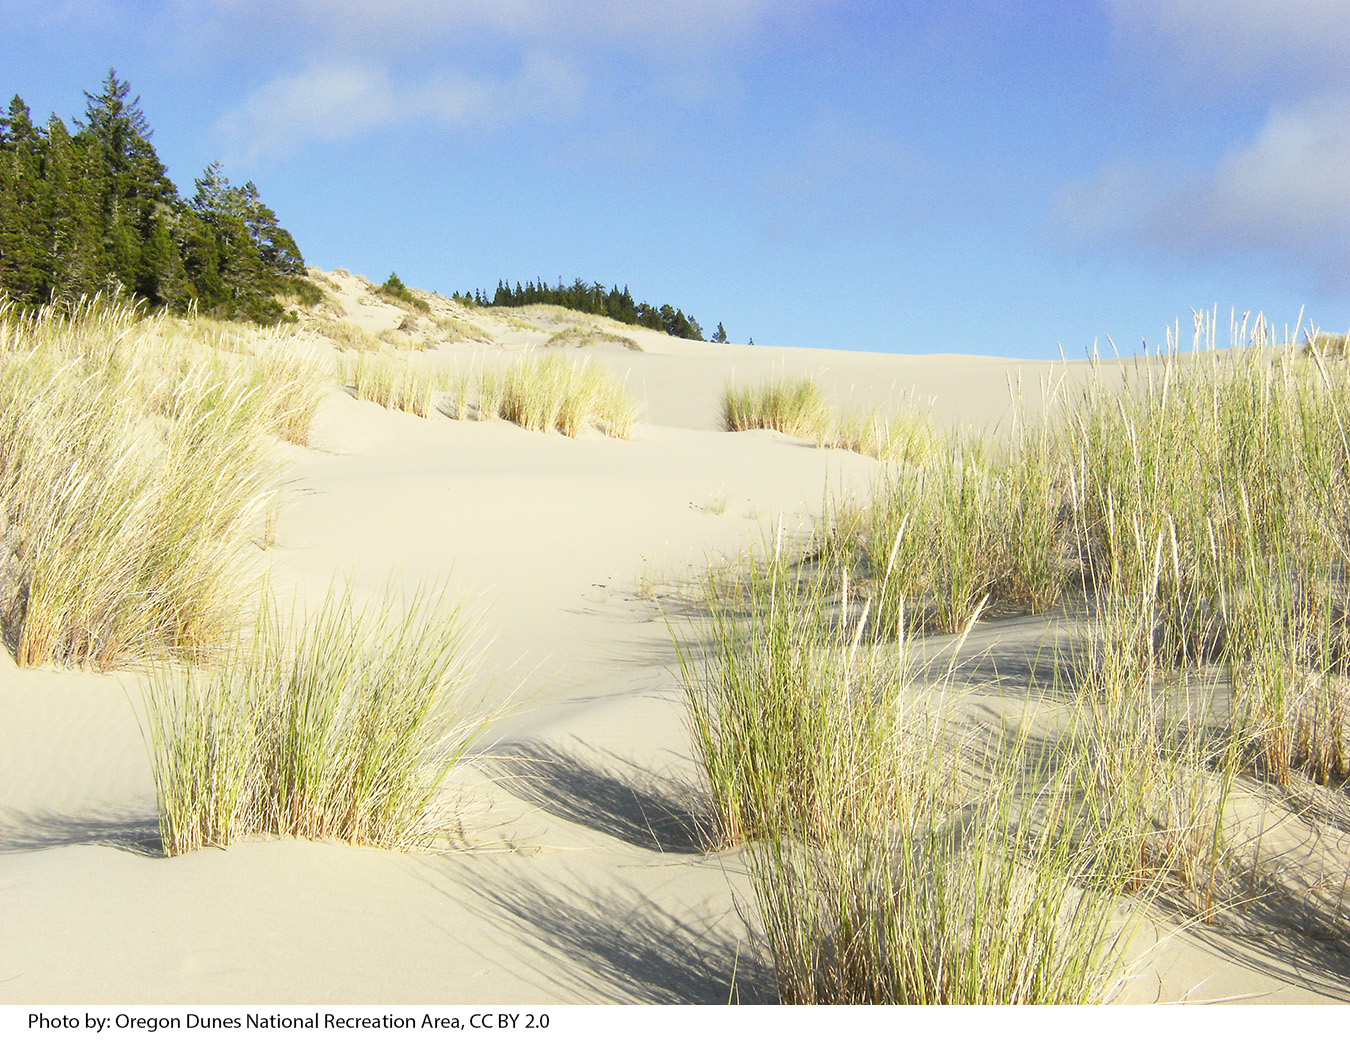 Oregon dunes with grasses in foreground